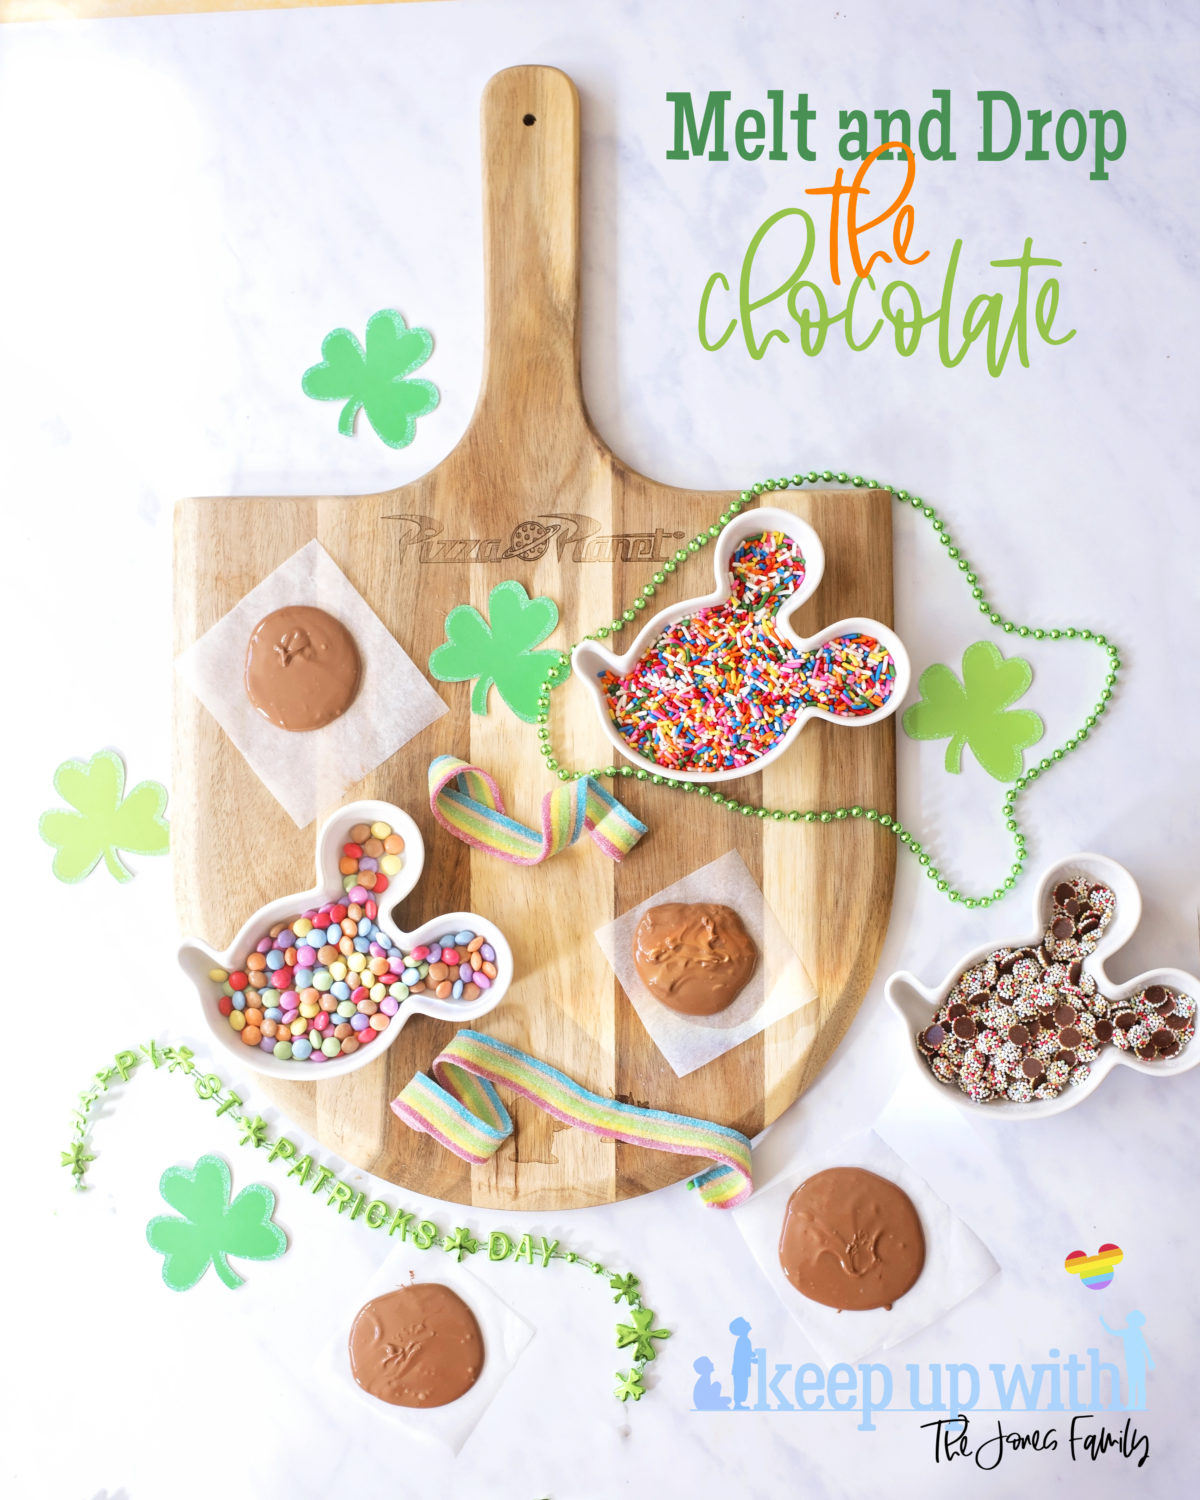 St patrick's day recipe ingredients for Leprechaun Chocolate Buttons